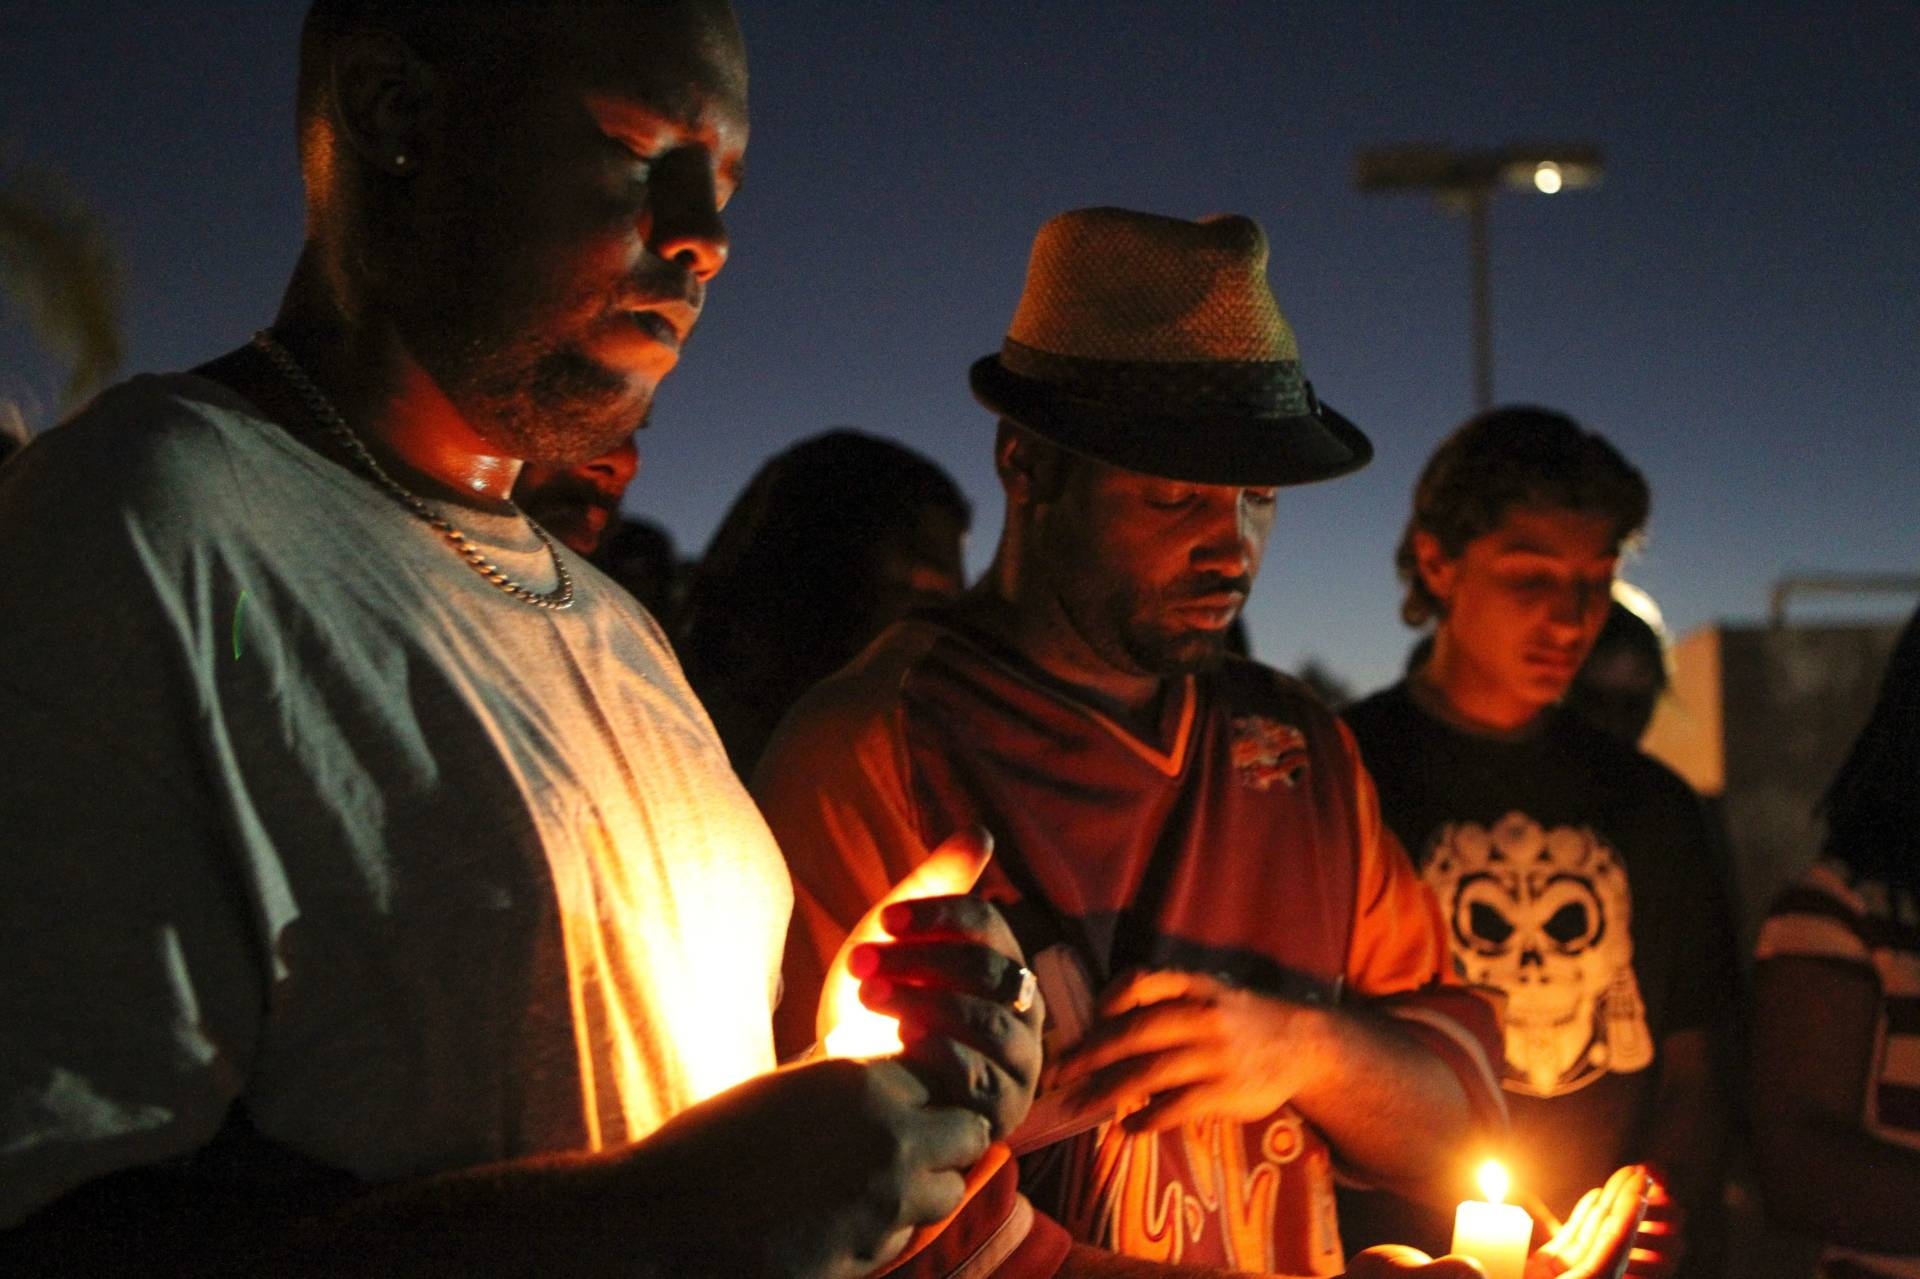 Mourners and activists hold a candlelight vigil during a rally in El Cajon, a suburb of San Diego, Calif., on Wednesday, in protest of the police shooting the day before. Bill Wechter/AFP/Getty Images